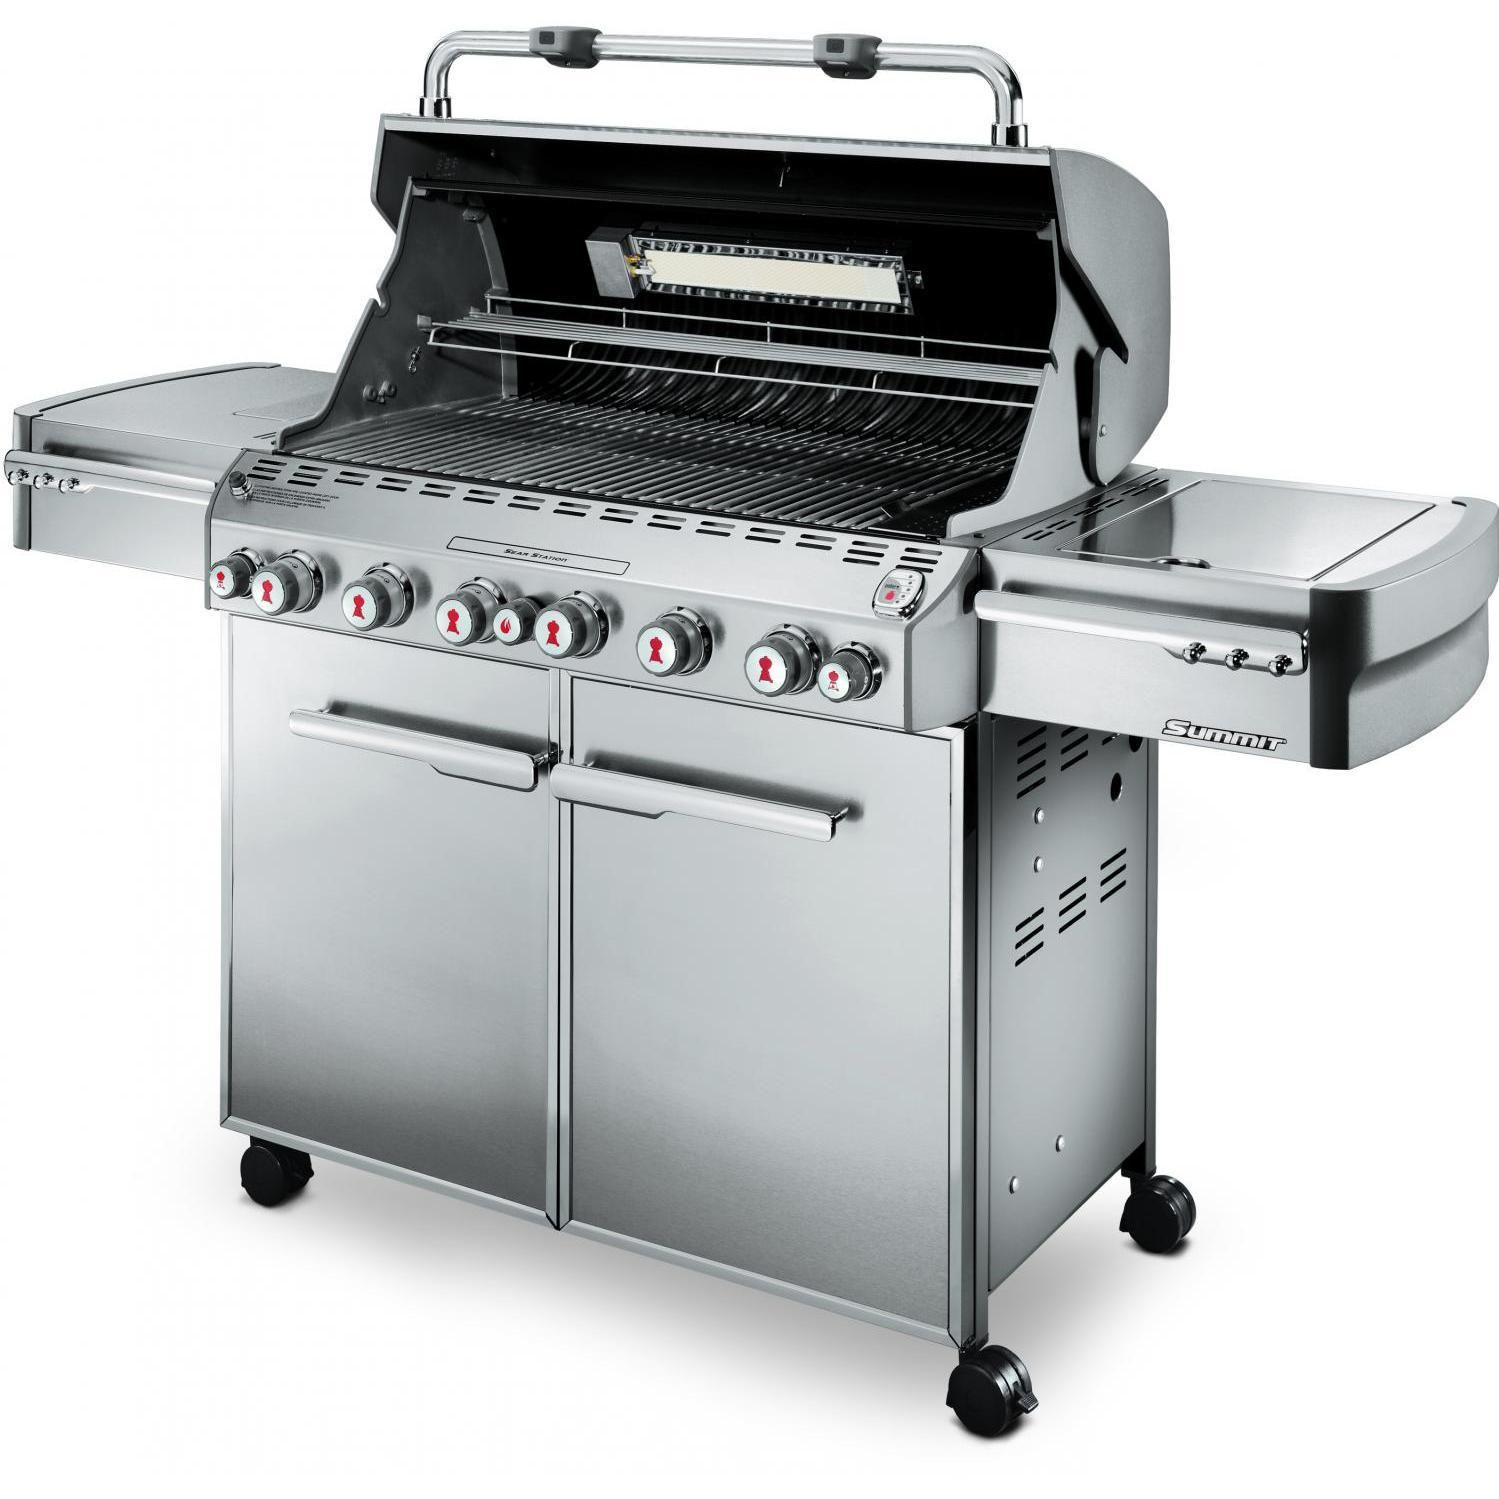 Napoleon Prestige Pro 650 Vs Weber Summit S670 Reviews Ratings Prices Gas Grill Propane Gas Grill Grilling